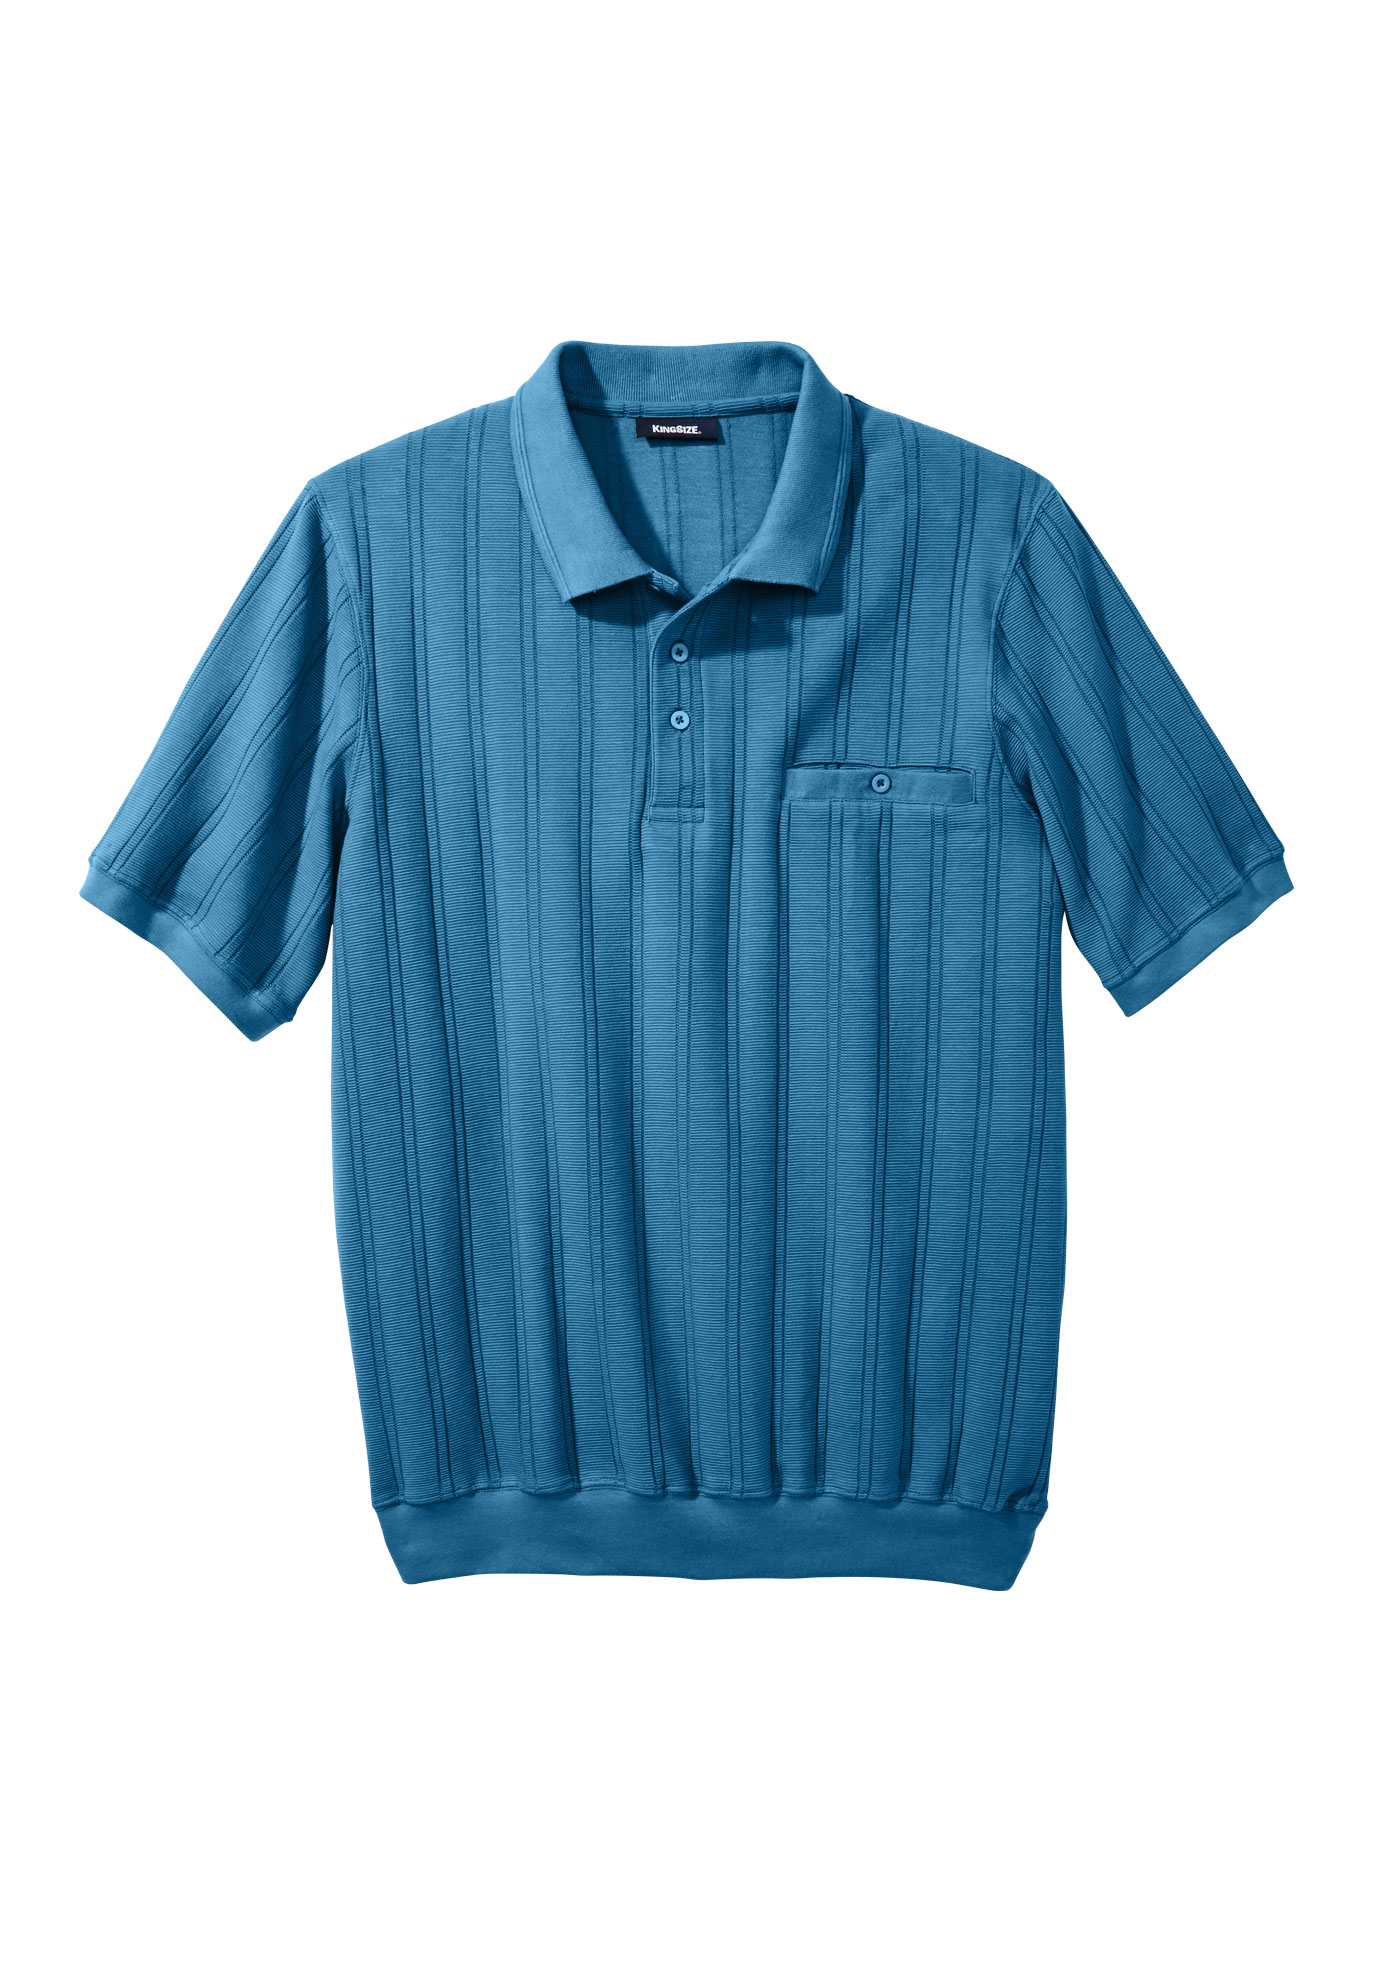 Banded Bottom Textured Polo Shirt Plus Size Polos King Size